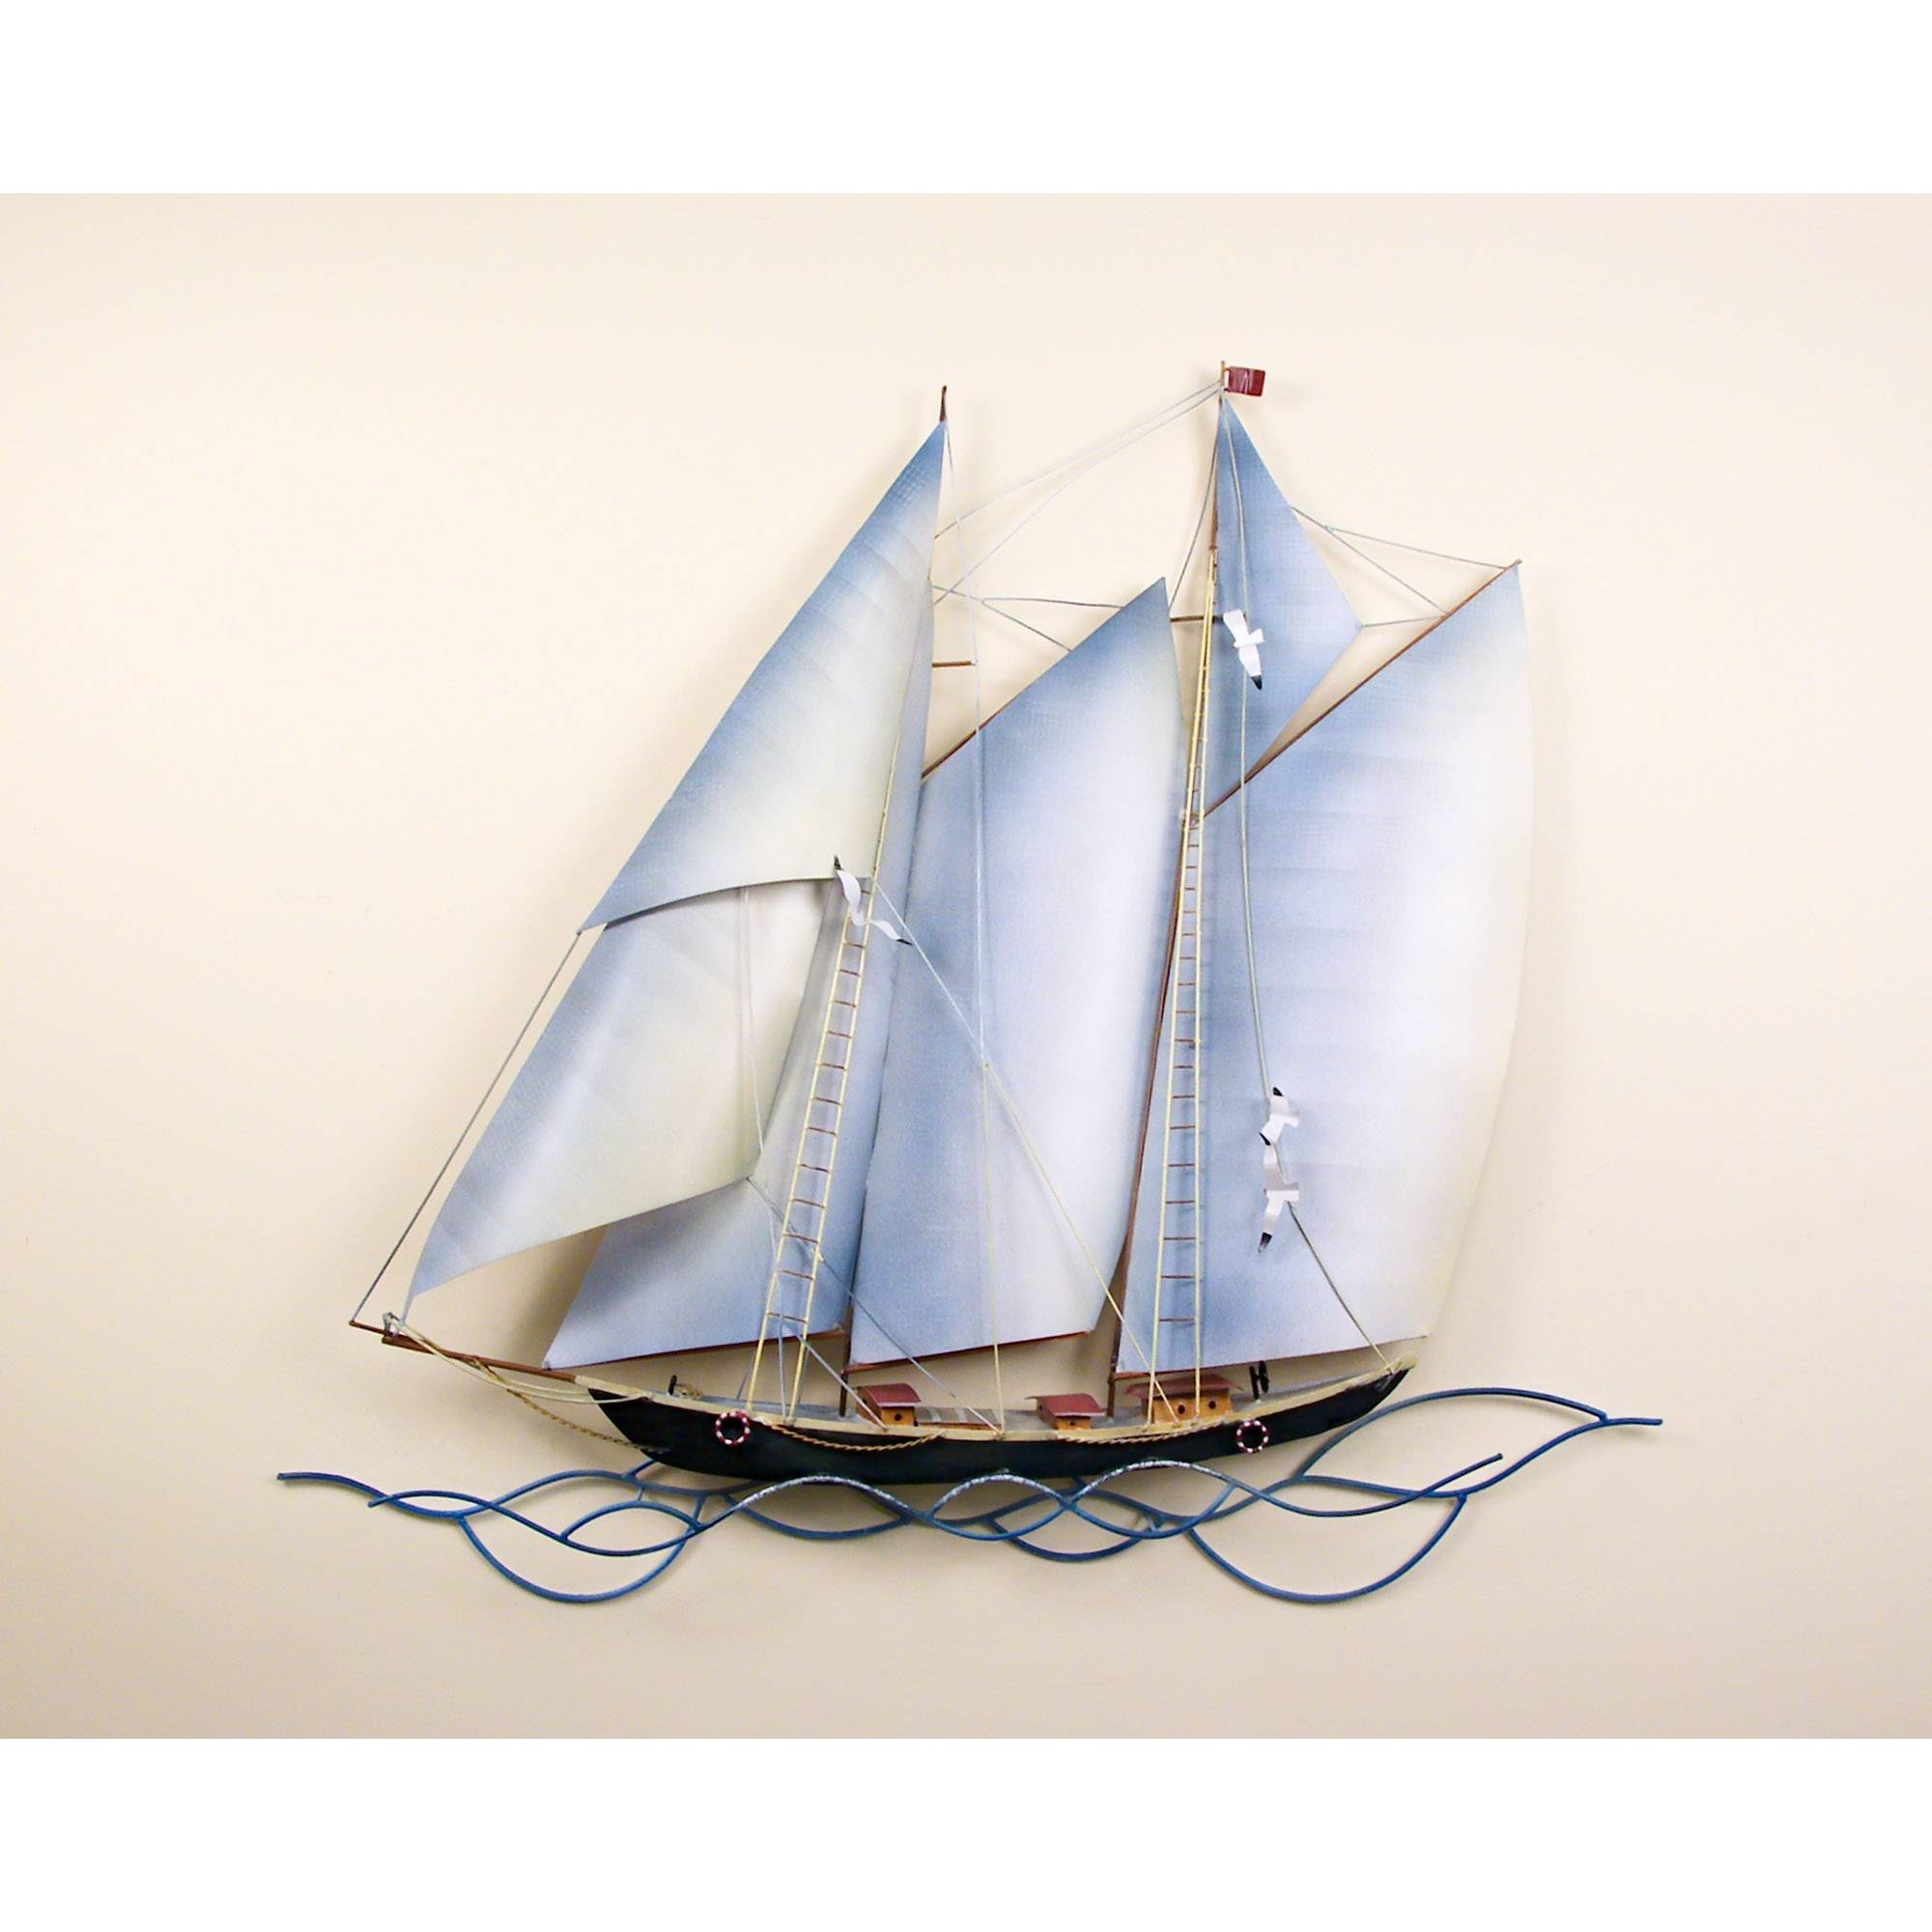 Brilliant 30+ Metal Sailboat Wall Art Design Ideas Of Wall Hanging With 2018 Metal Sailboat Wall Art (View 11 of 30)